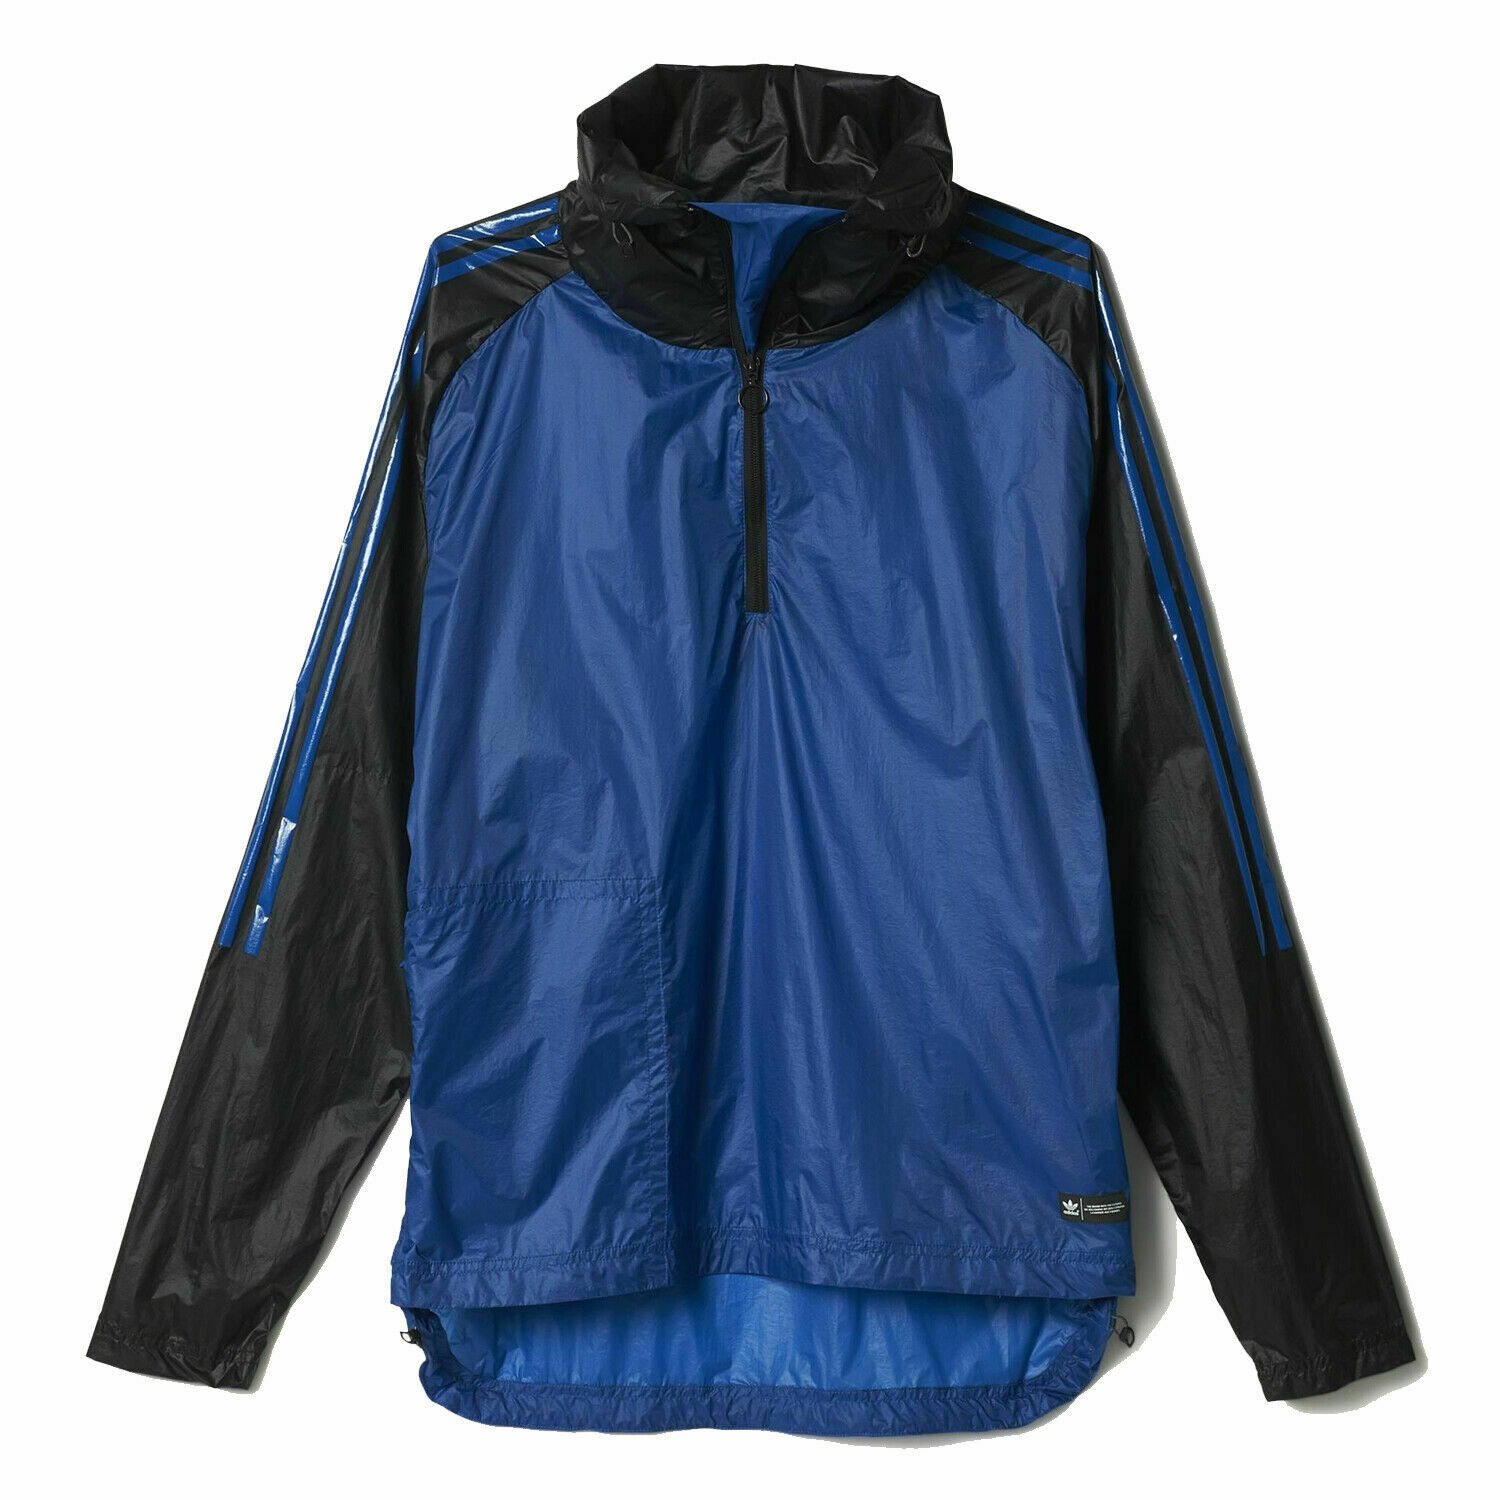 Details about Vintage ADIDAS Originals Waterproof Jacket | Coat Cagoule Rain Windbreaker Retro